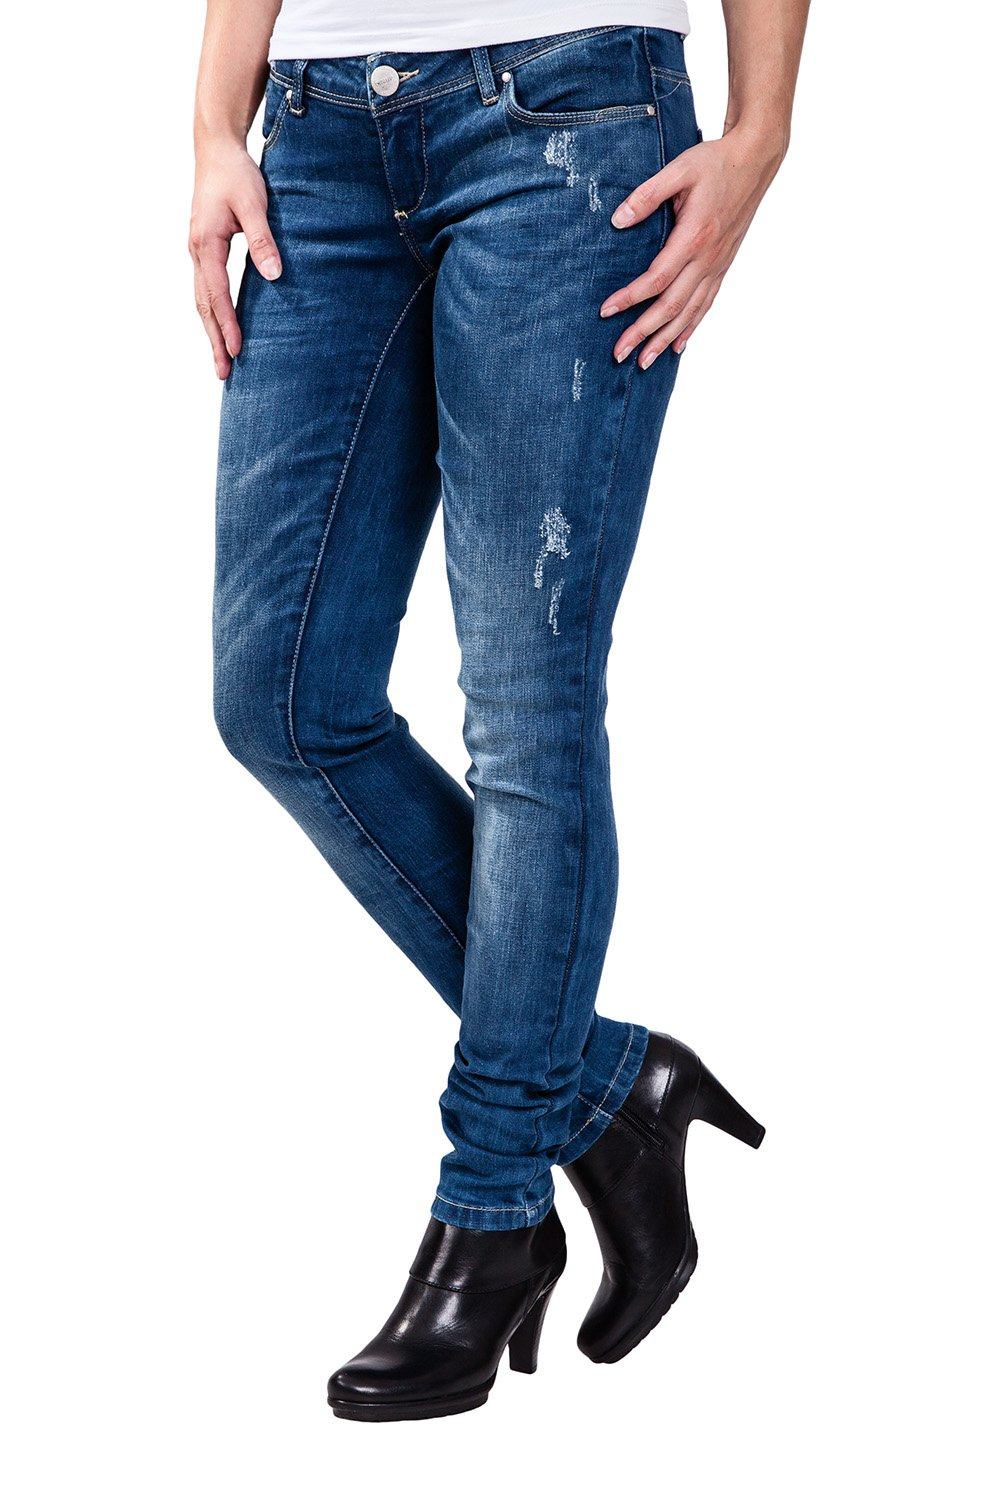 Only Jeans Offers You Comfort Material